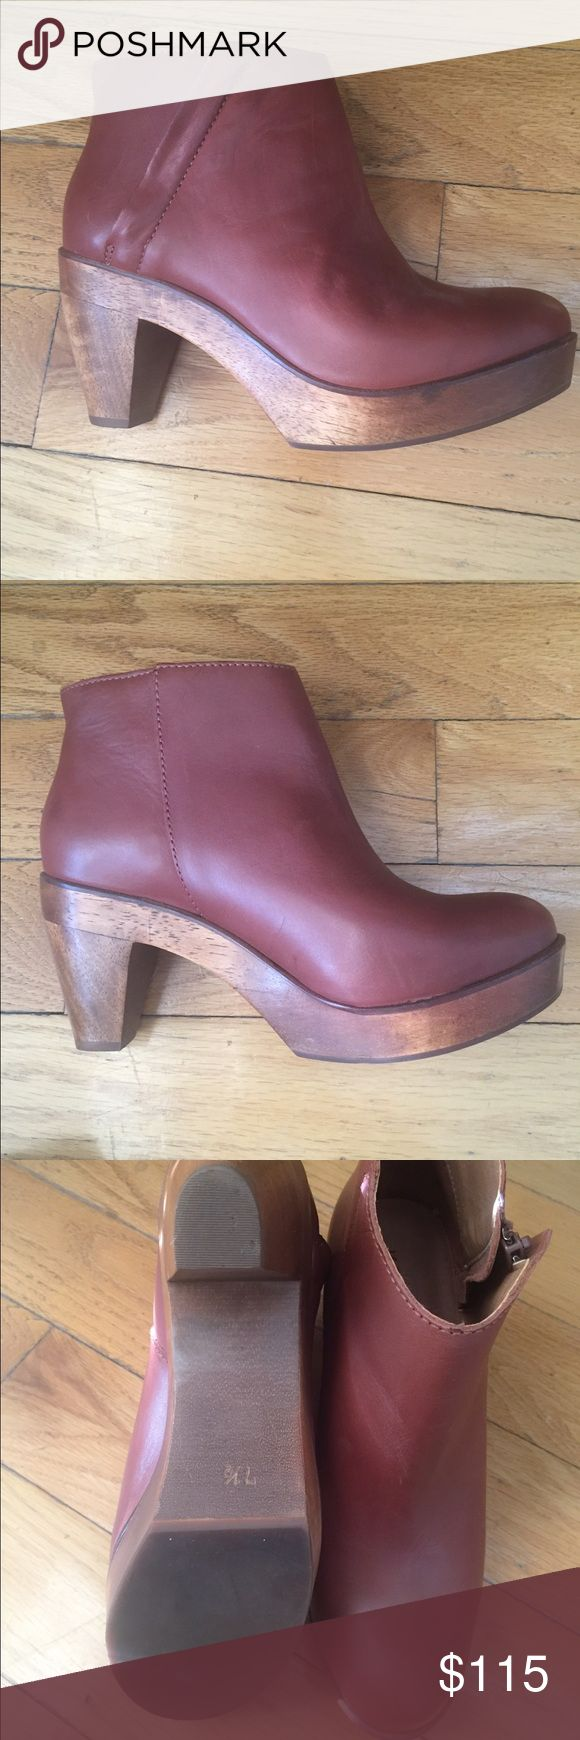 Anthropologie -Kelsi Dagger Clog Boot The Aetna Clog by Kelsi Dagger with wooden platform and angled zipper. Brown leather. Excellent Condition. Kelsi Dagger Shoes Mules & Clogs